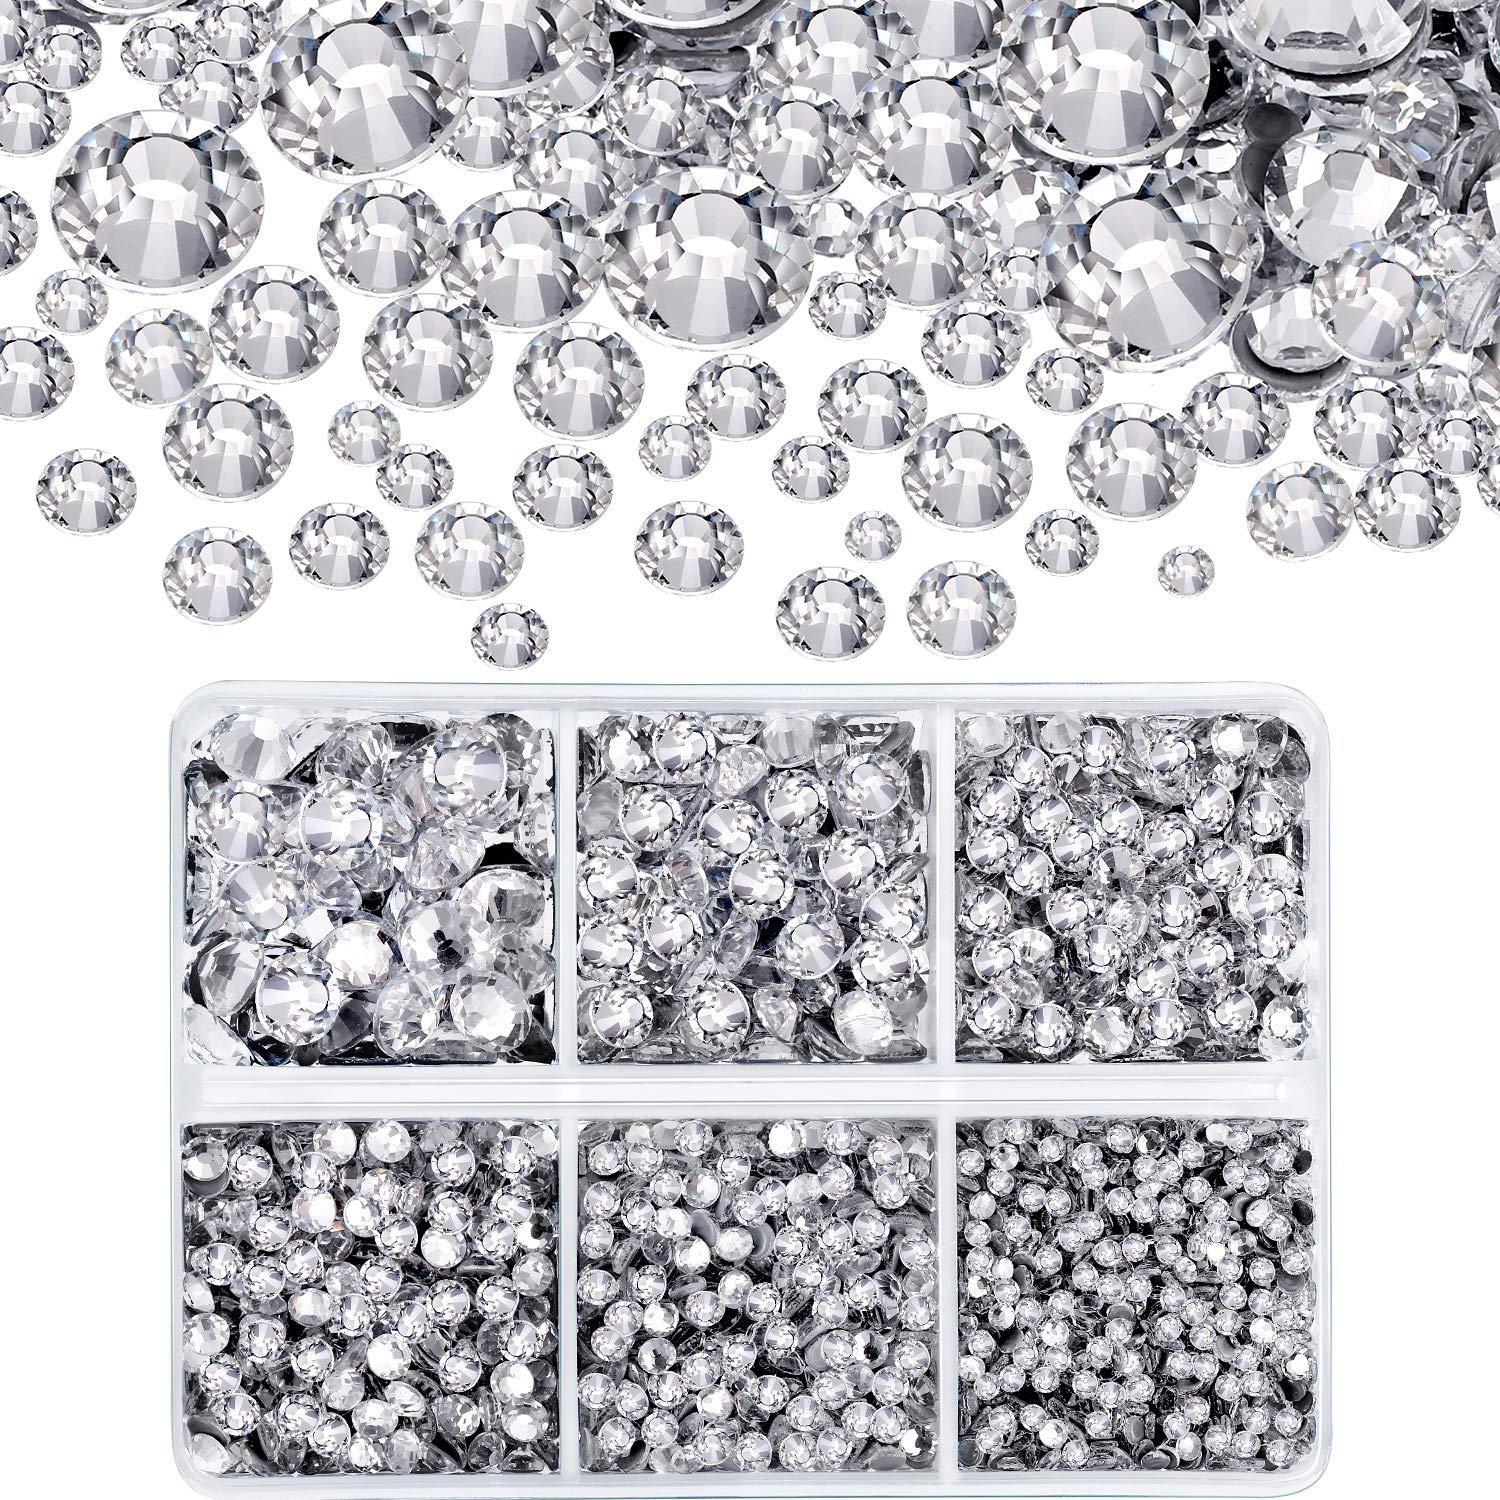 4000 Pieces Mixed Size Hot Fix Round Crystals Gems Glass Stones Hotfix Flat Back Rhinestones (Clear Color) by WILLBOND